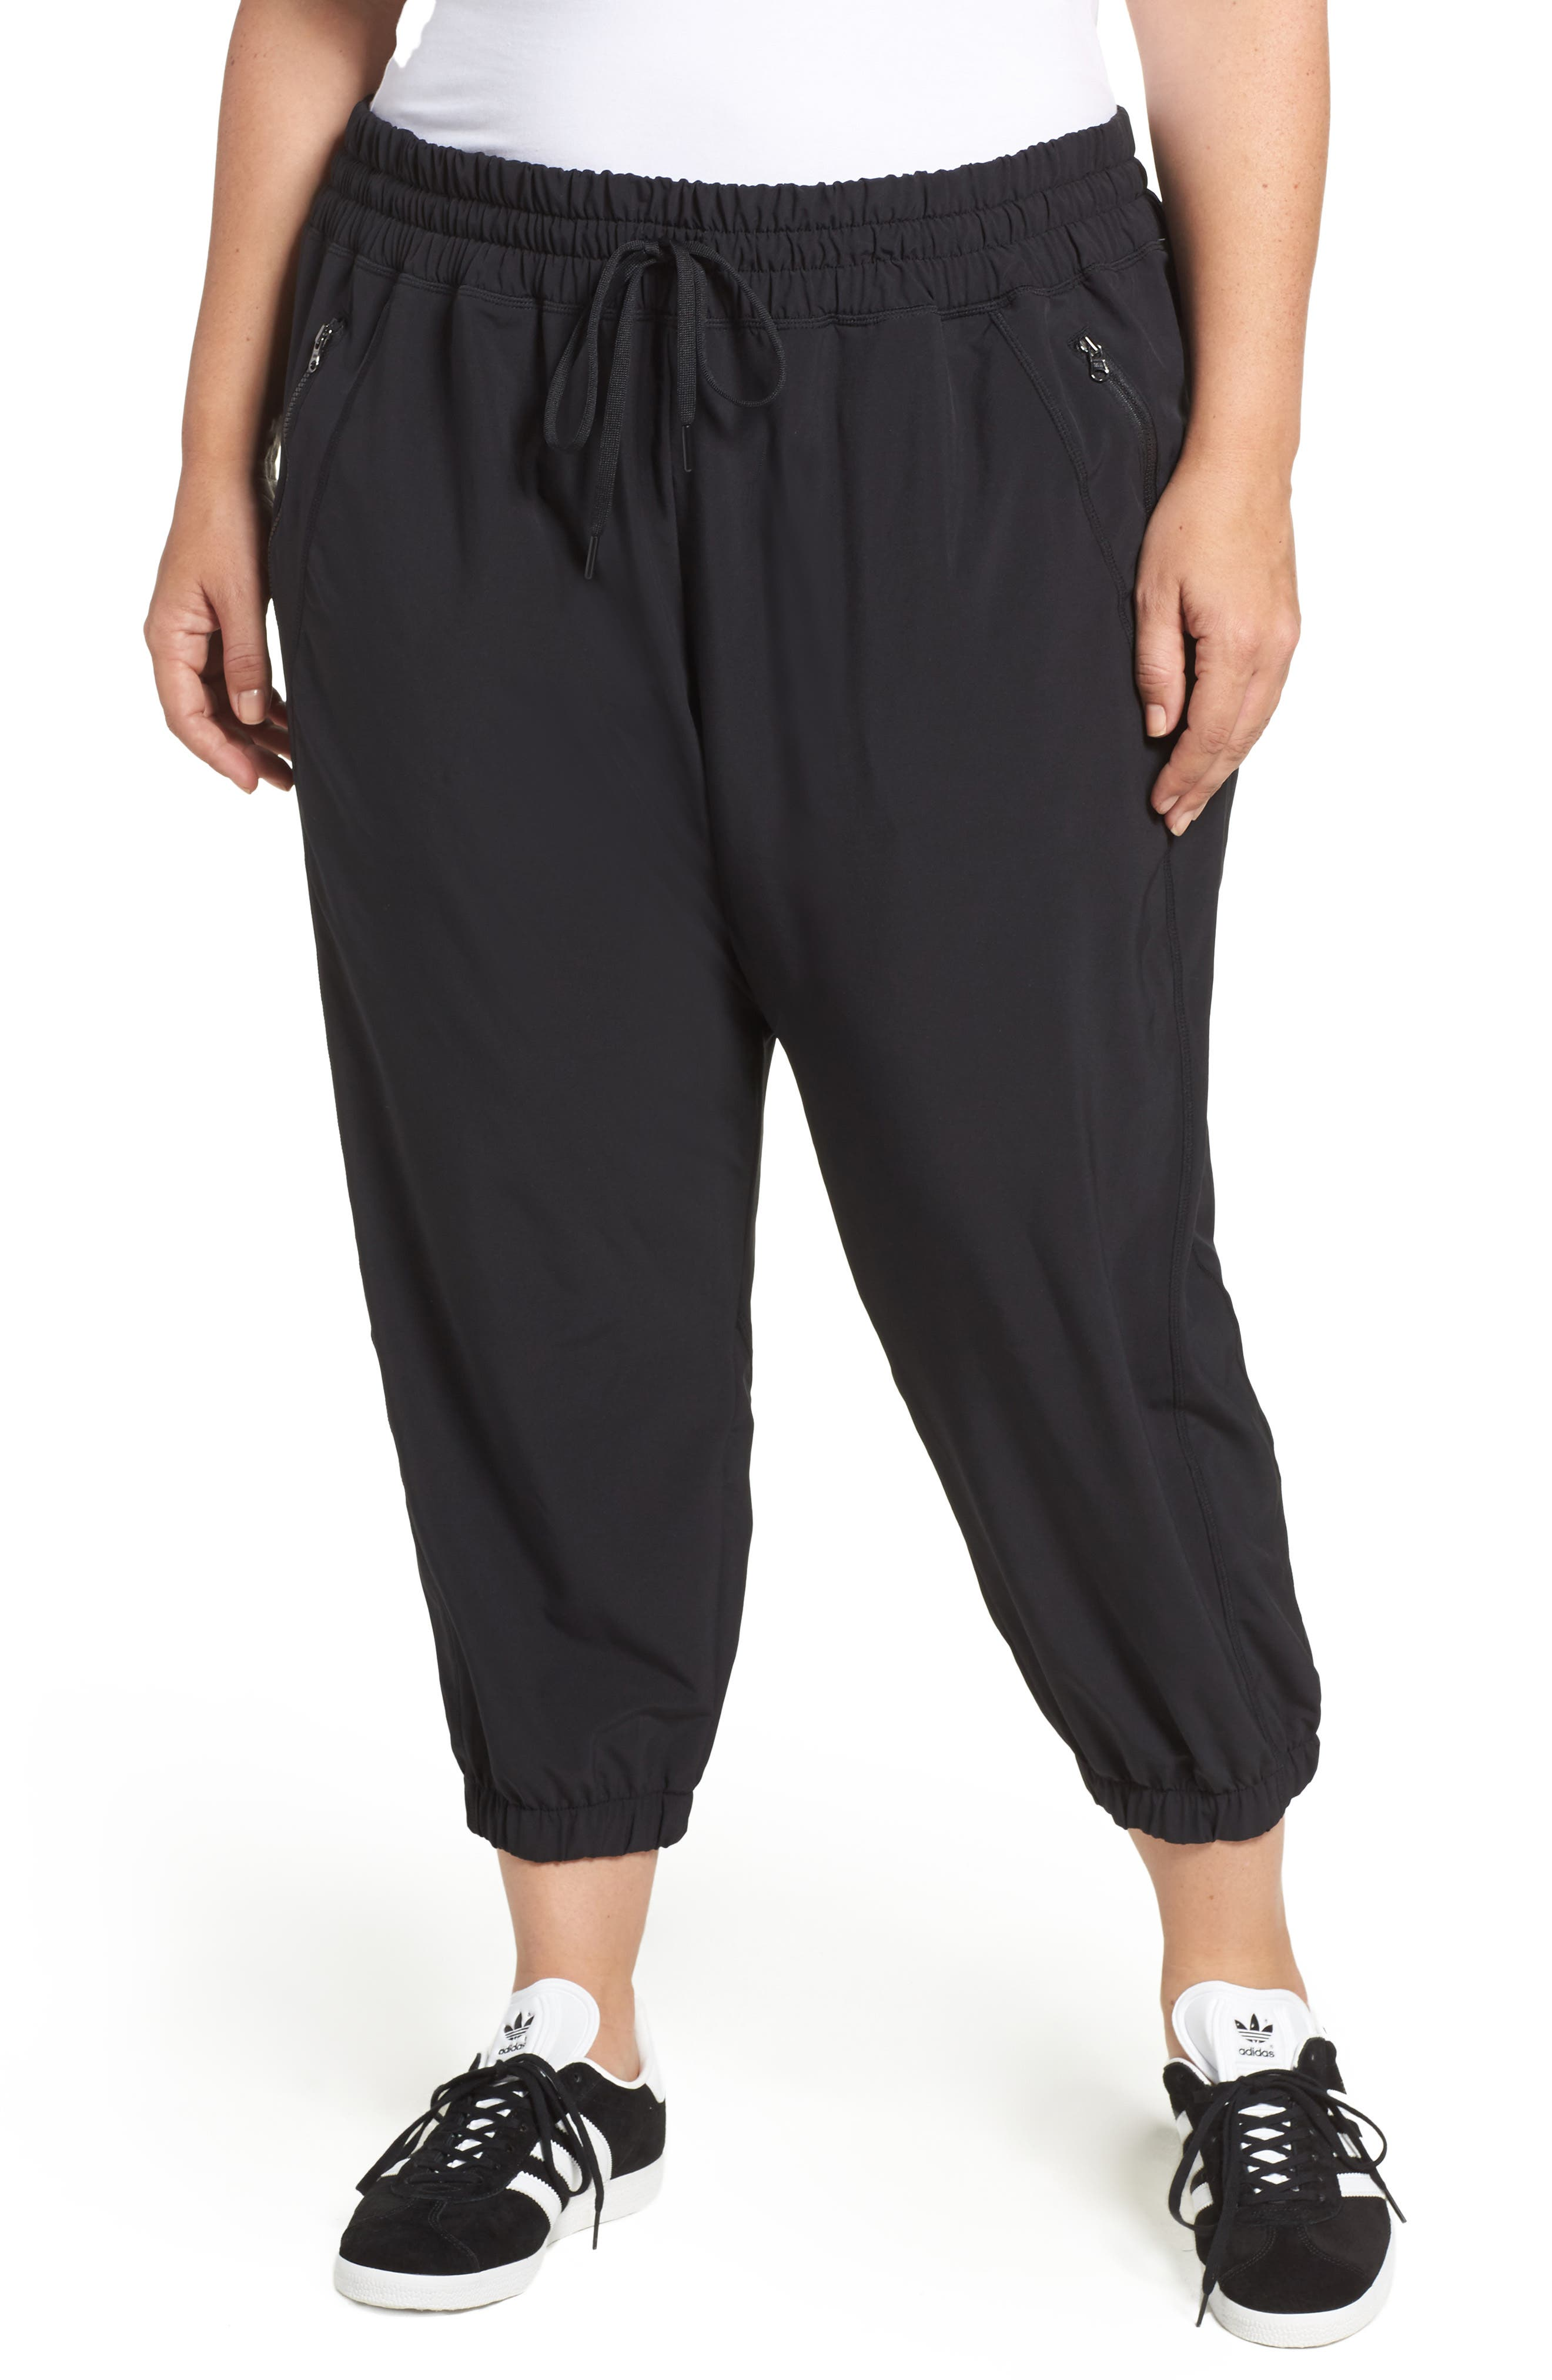 Main Image - Zella Out & About Crop Jogger Pants (Plus Size)